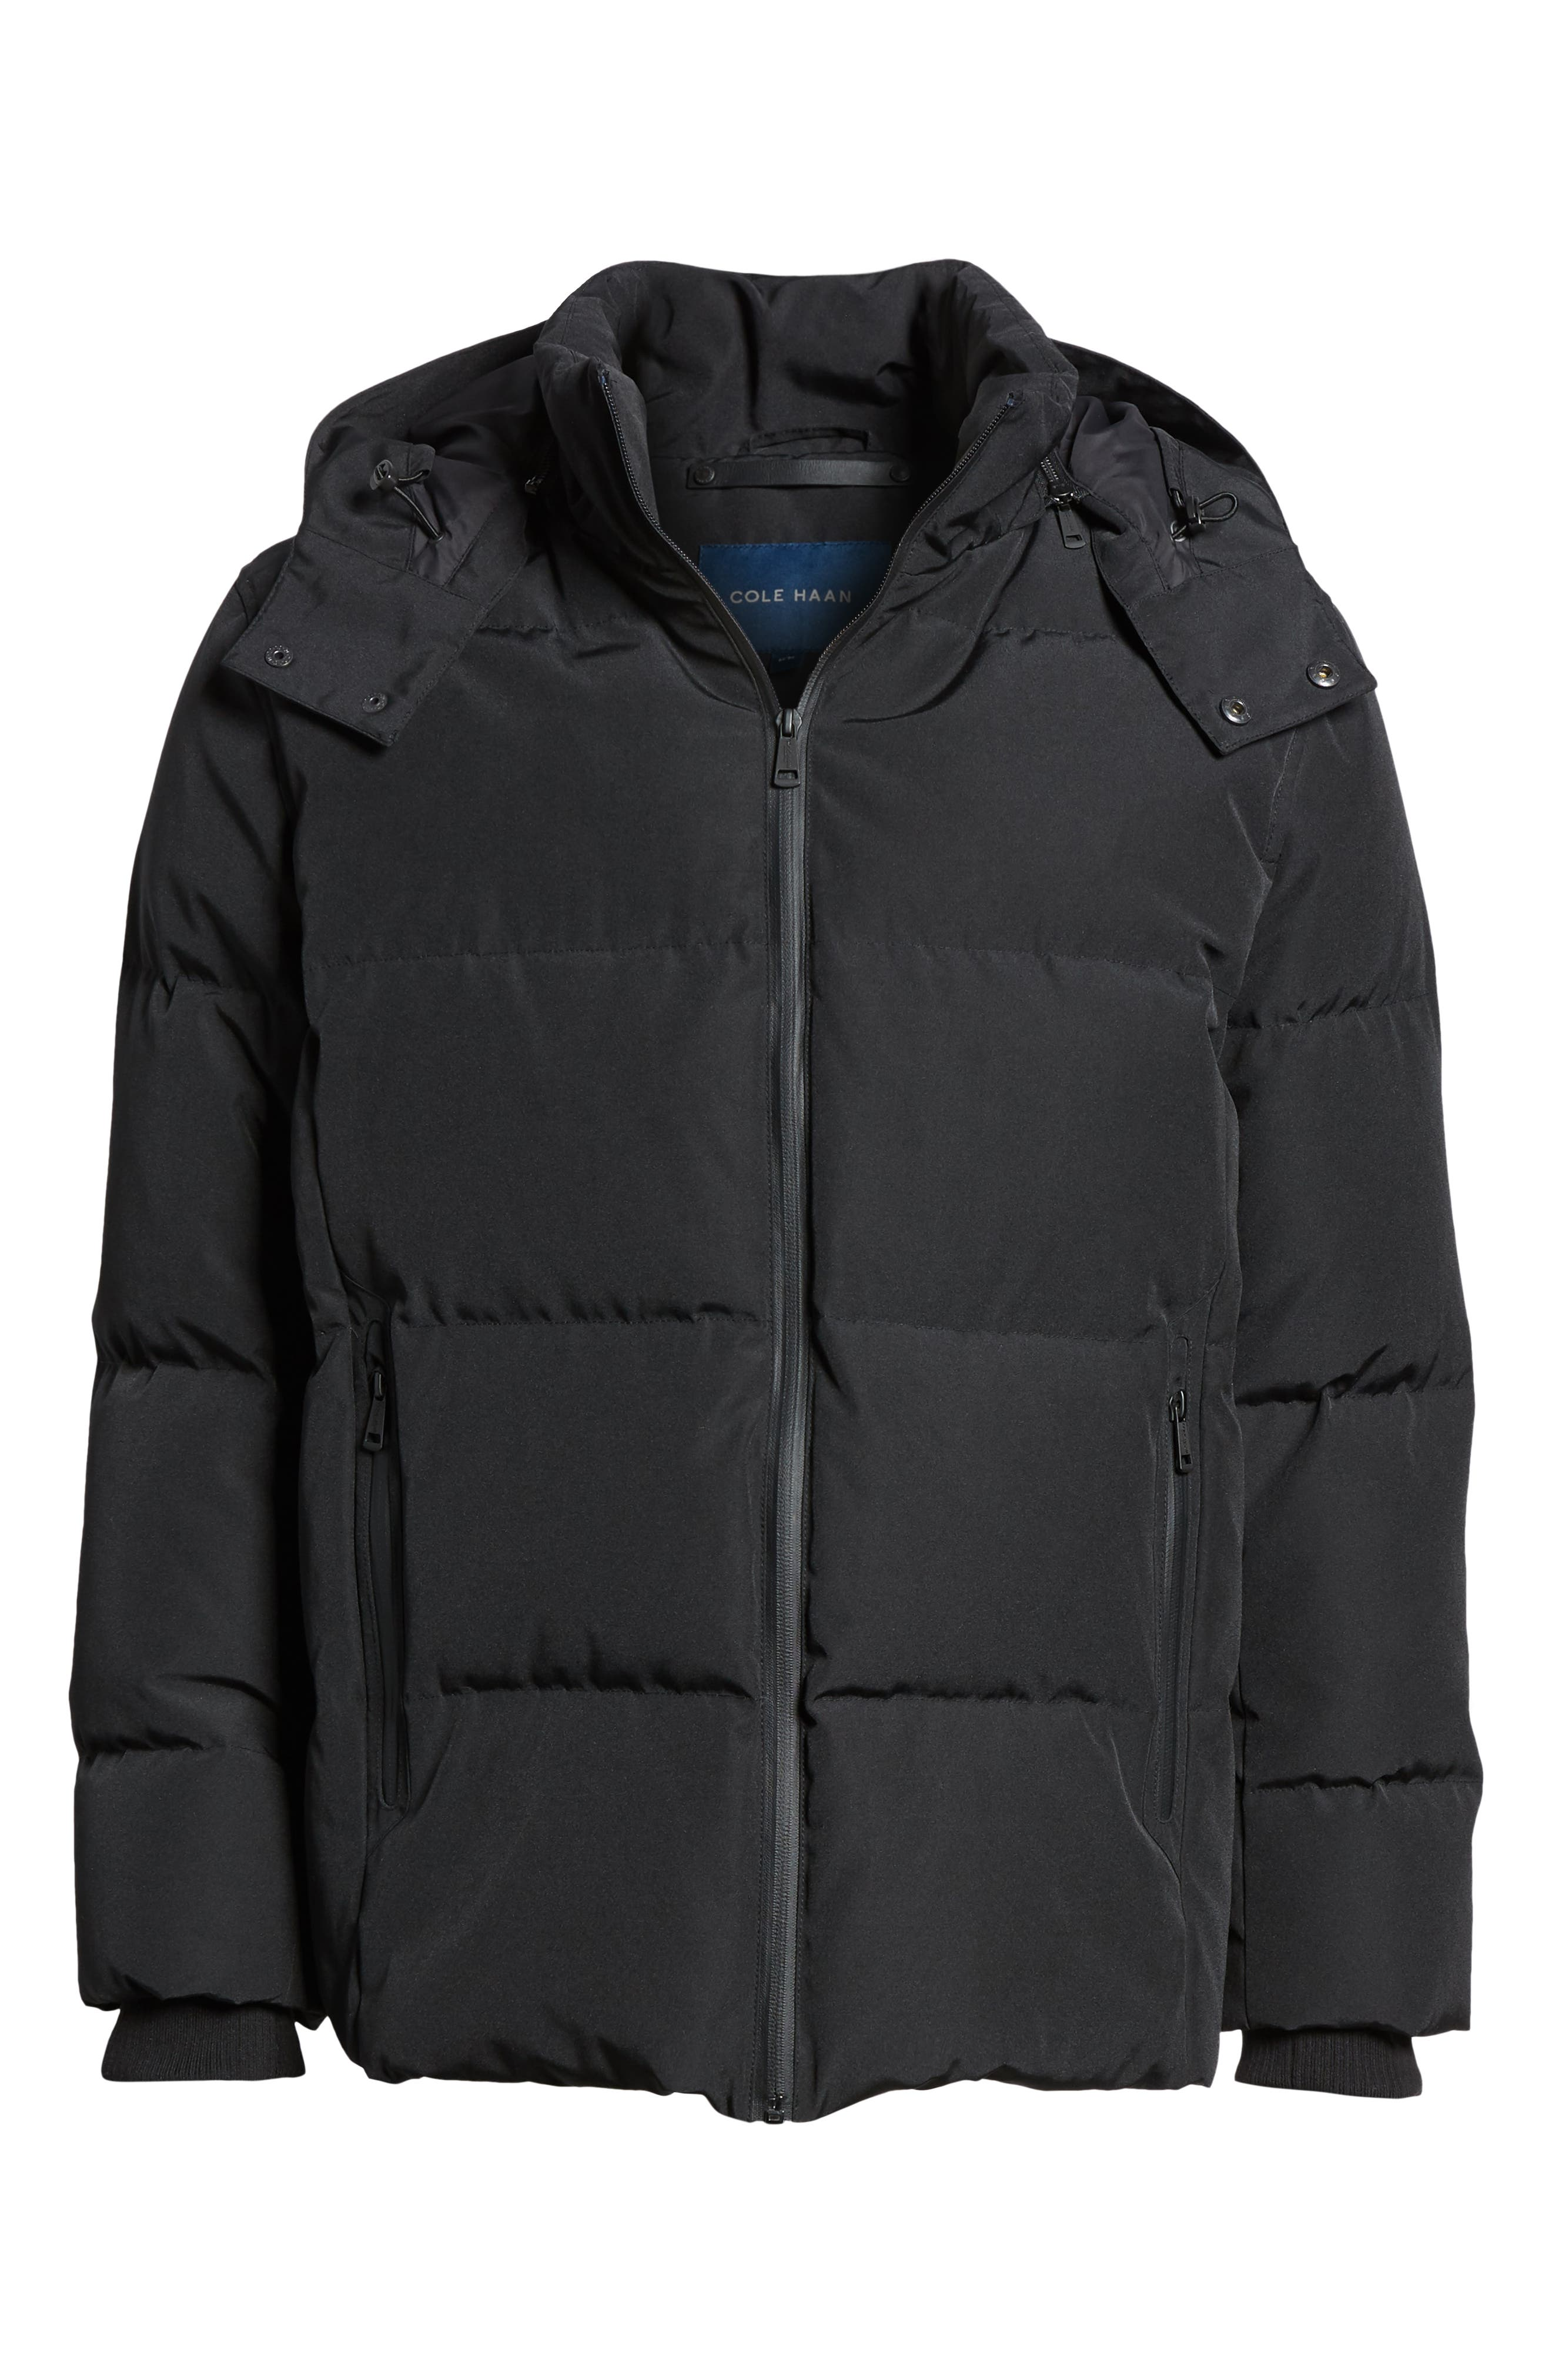 COLE HAAN SIGNATURE, Hooded Puffer Jacket, Alternate thumbnail 6, color, 001